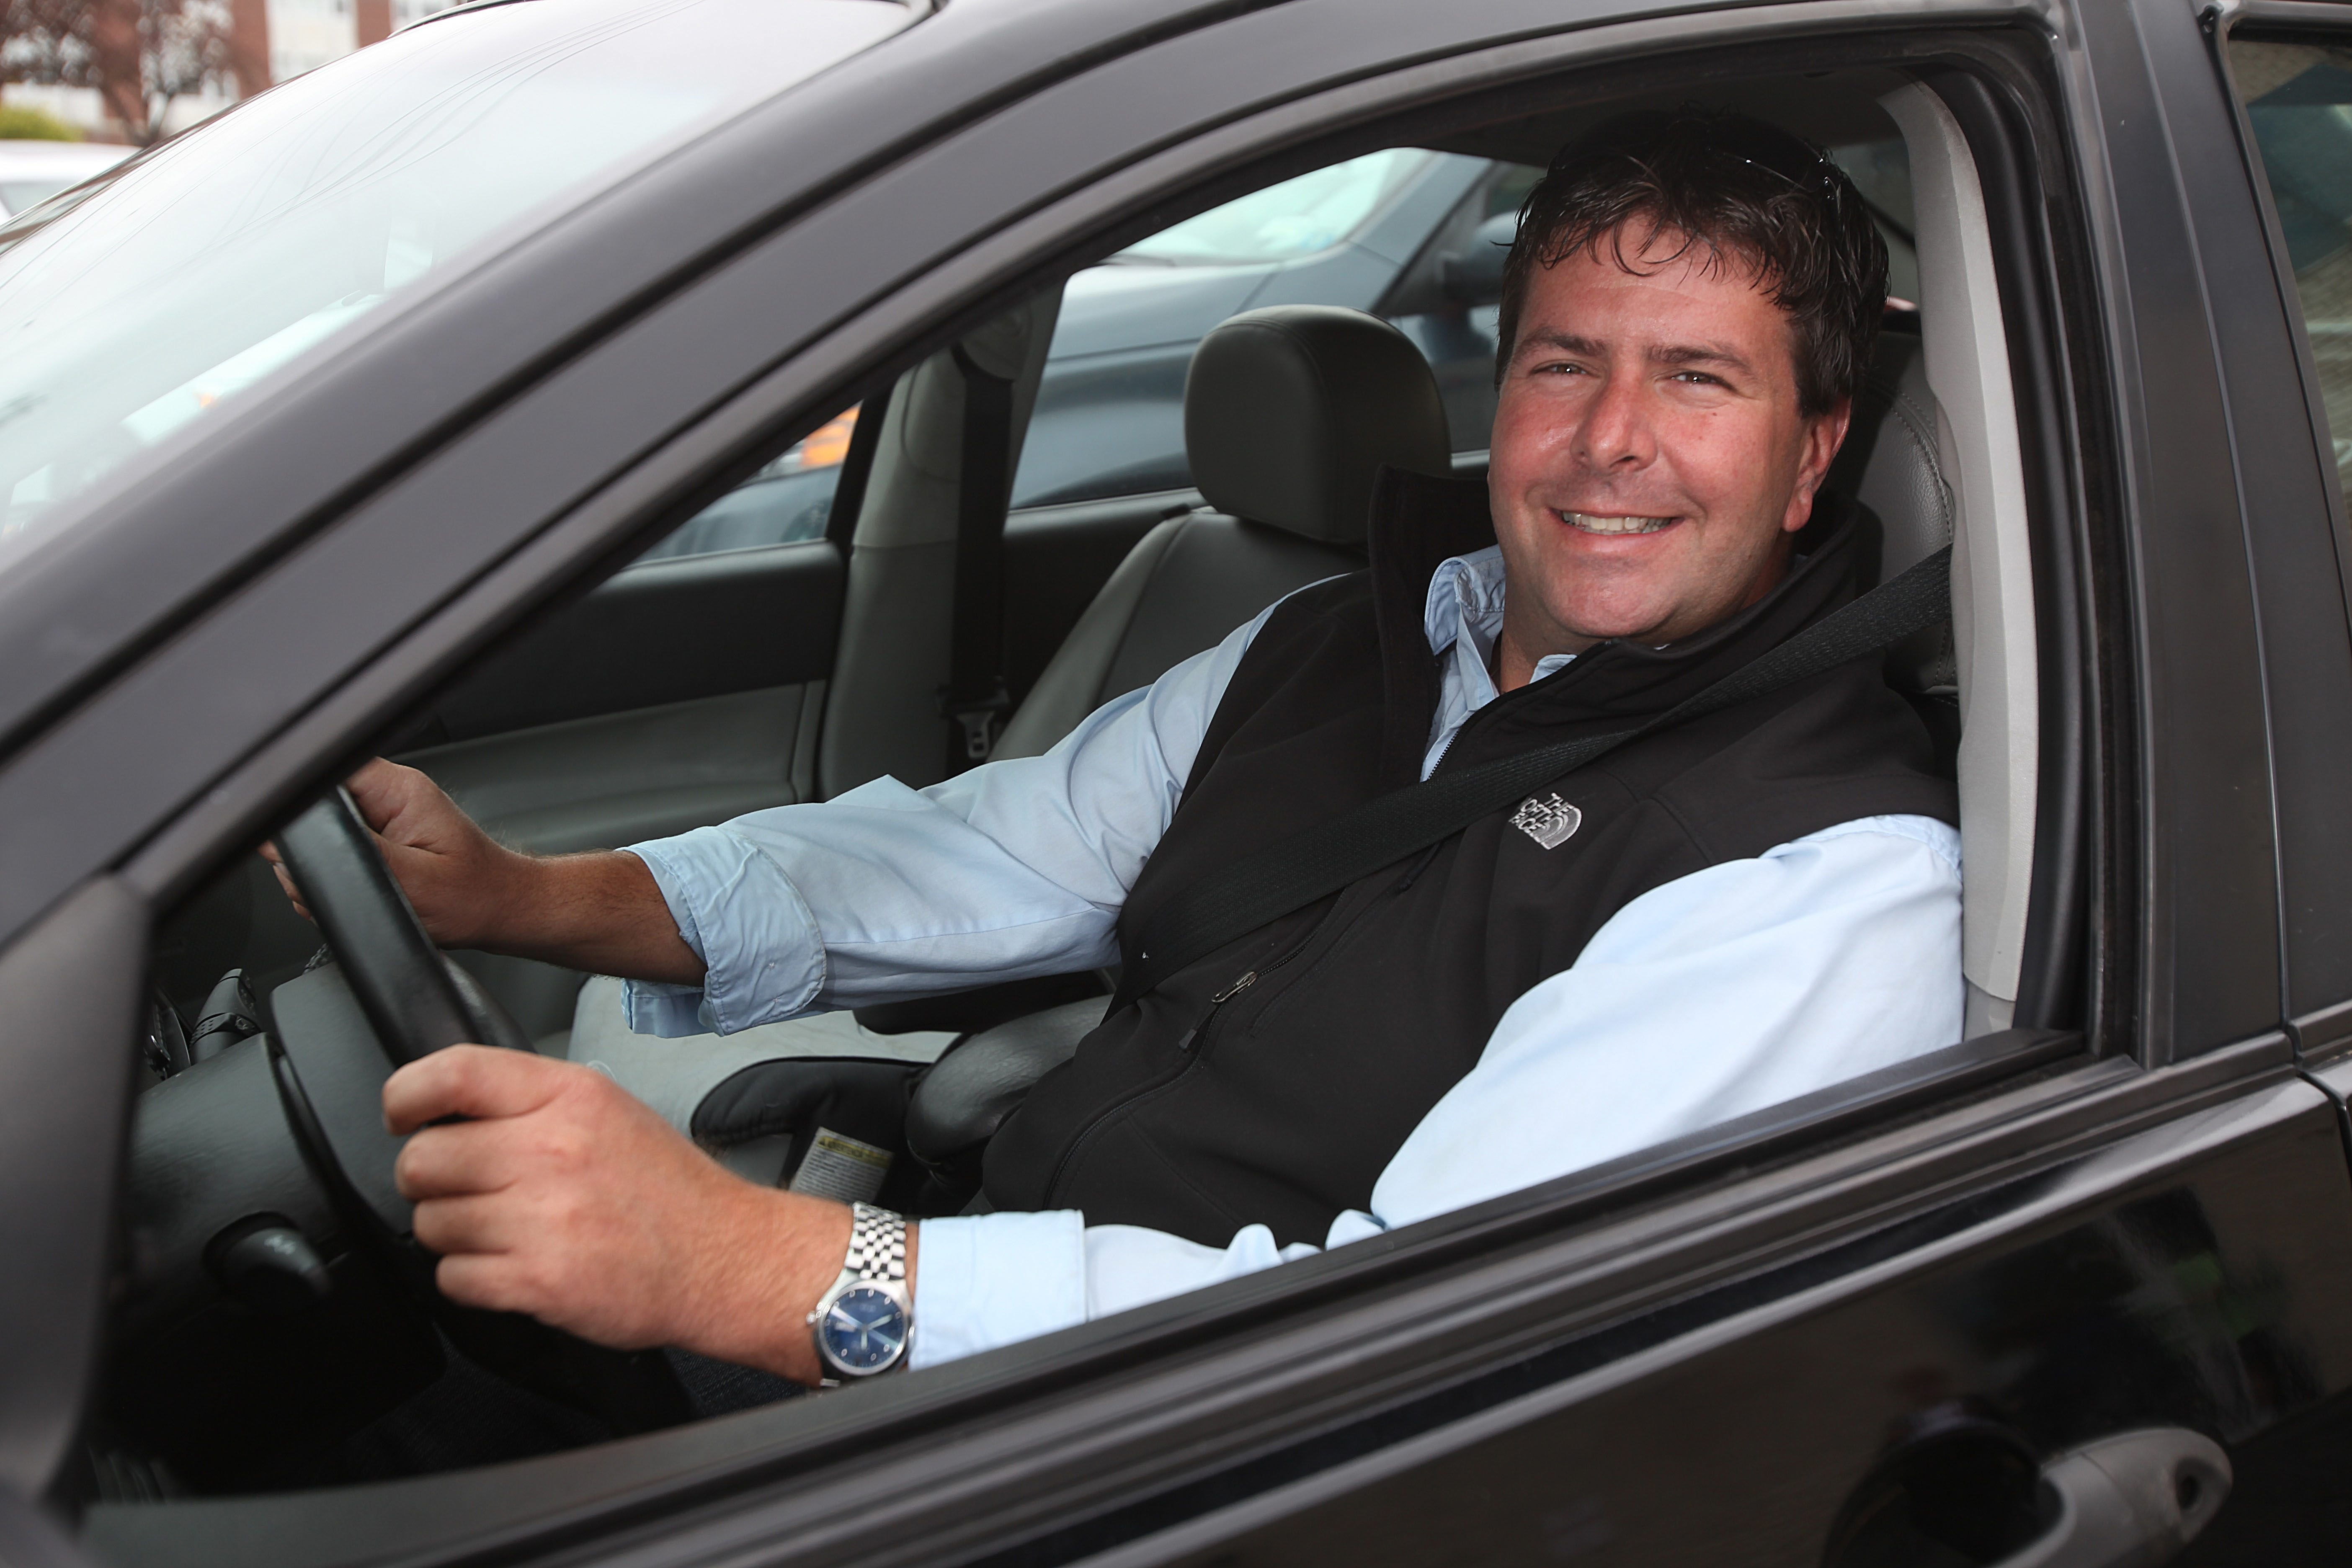 Williamsville Deputy Mayor Christopher J. Duquin, who operates a driving school, faces a driving while intoxicated charge. (Buffalo News file photo)